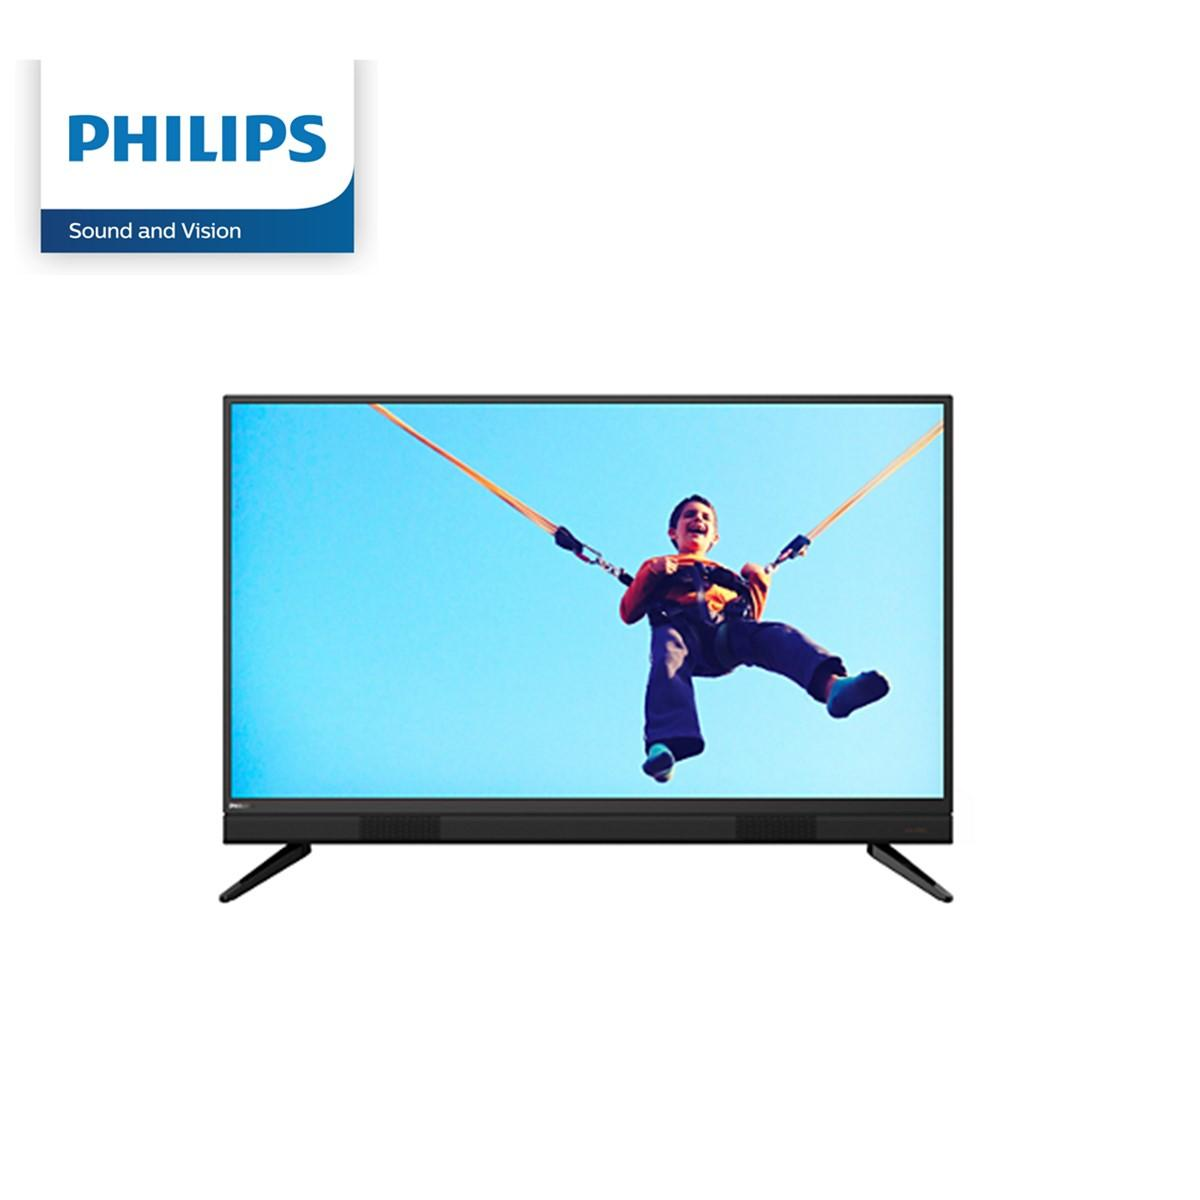 Philips HD LED TV 32PHT5583/98 with 3 years local warranty + Free HDM 2m  Cable with LED indicator worth $29 90